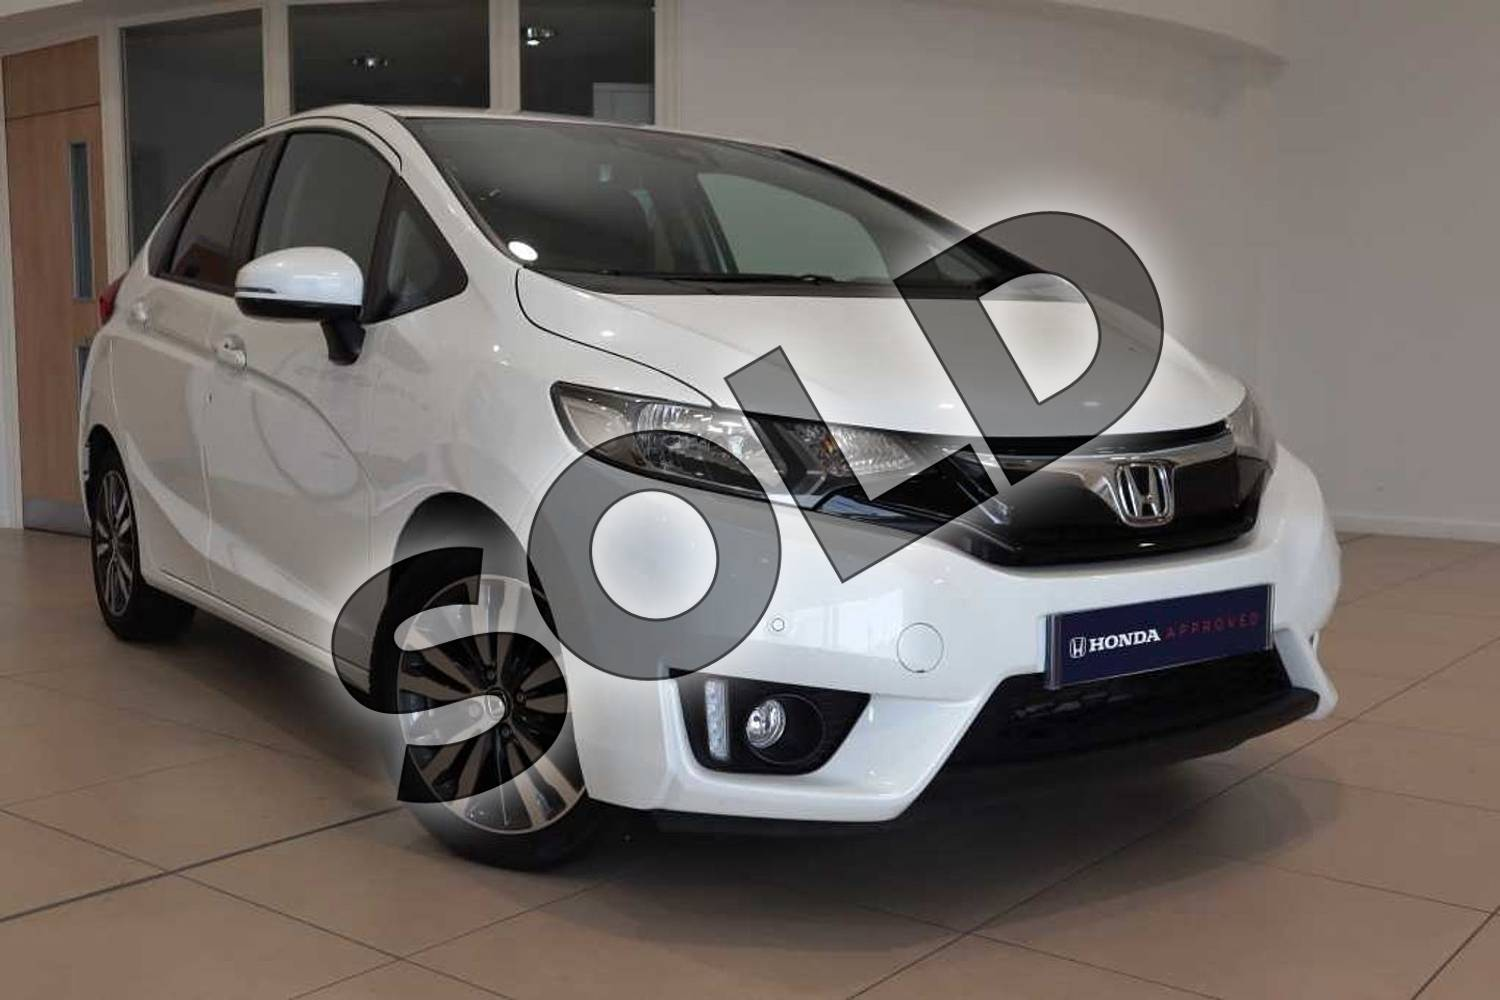 2017 Honda Jazz Hatchback 1.3 EX 5dr CVT in White Orchid at Listers Honda Coventry